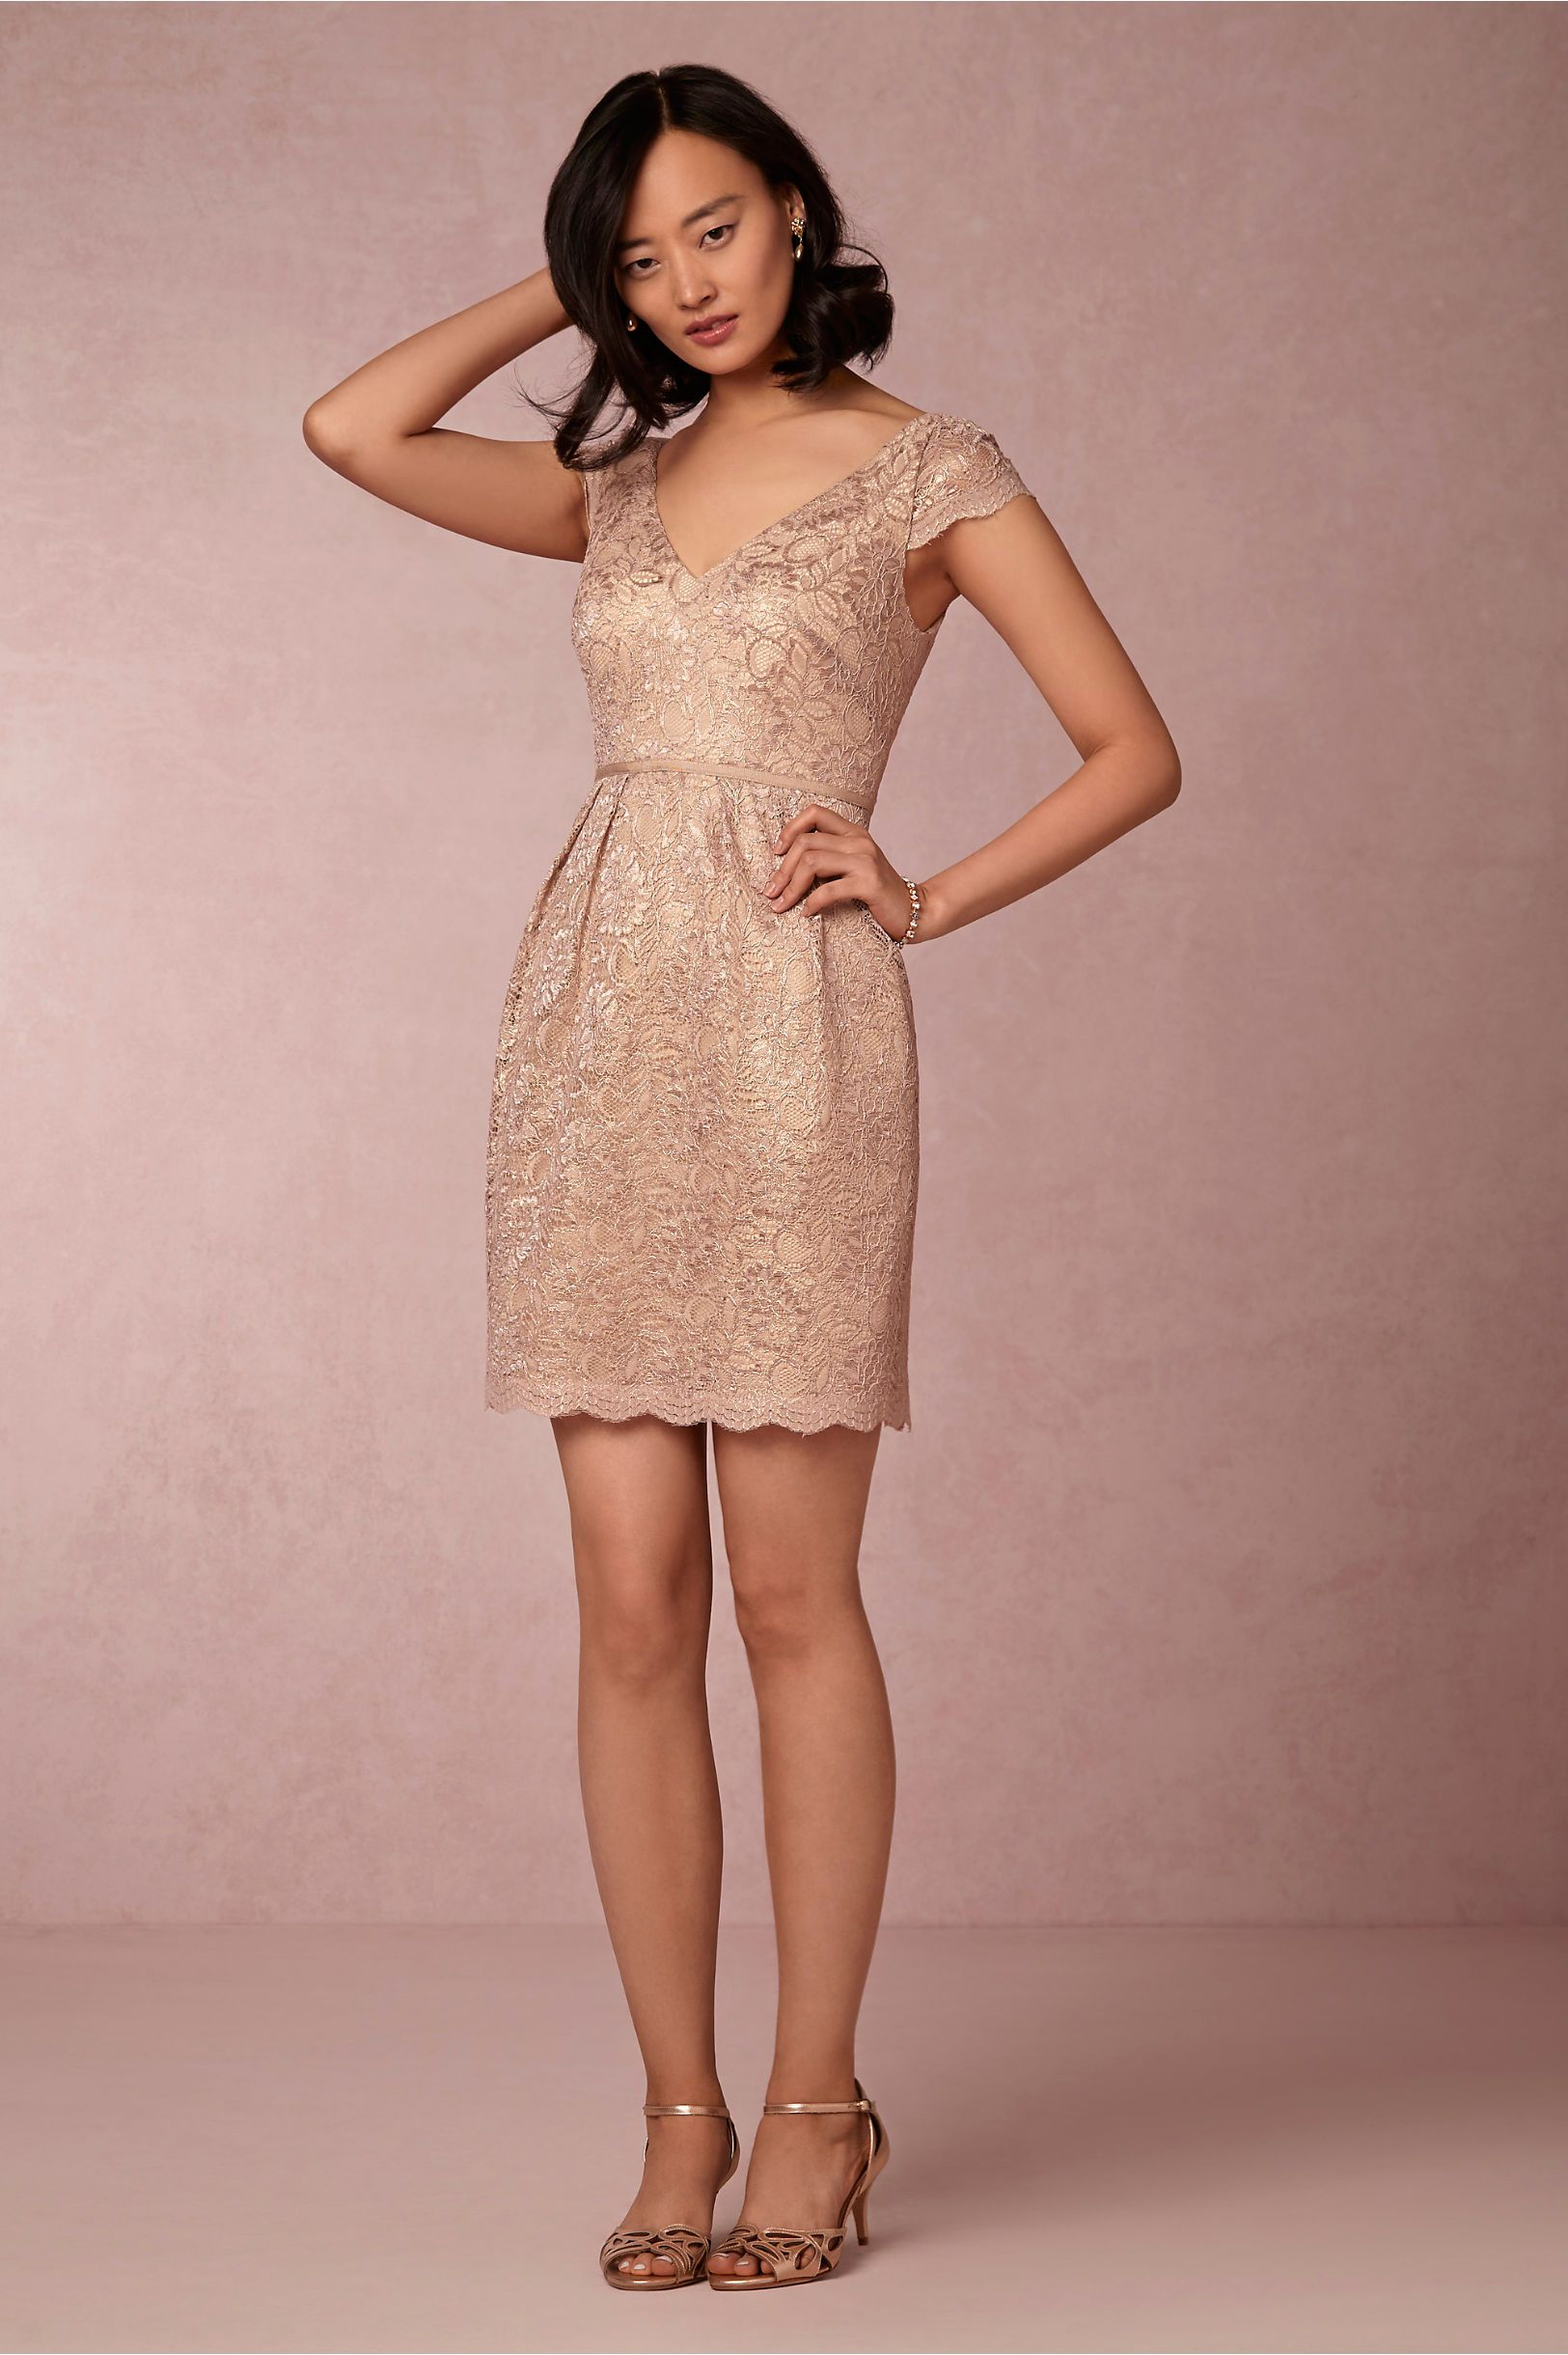 Beckett dress in bridal party guests view all dresses at bhldn rose gold sequin bridesmaid dress a blush sequin rose gold bridesmaid dress for weddings or black tie events wear it as a special gown to galas and ombrellifo Choice Image